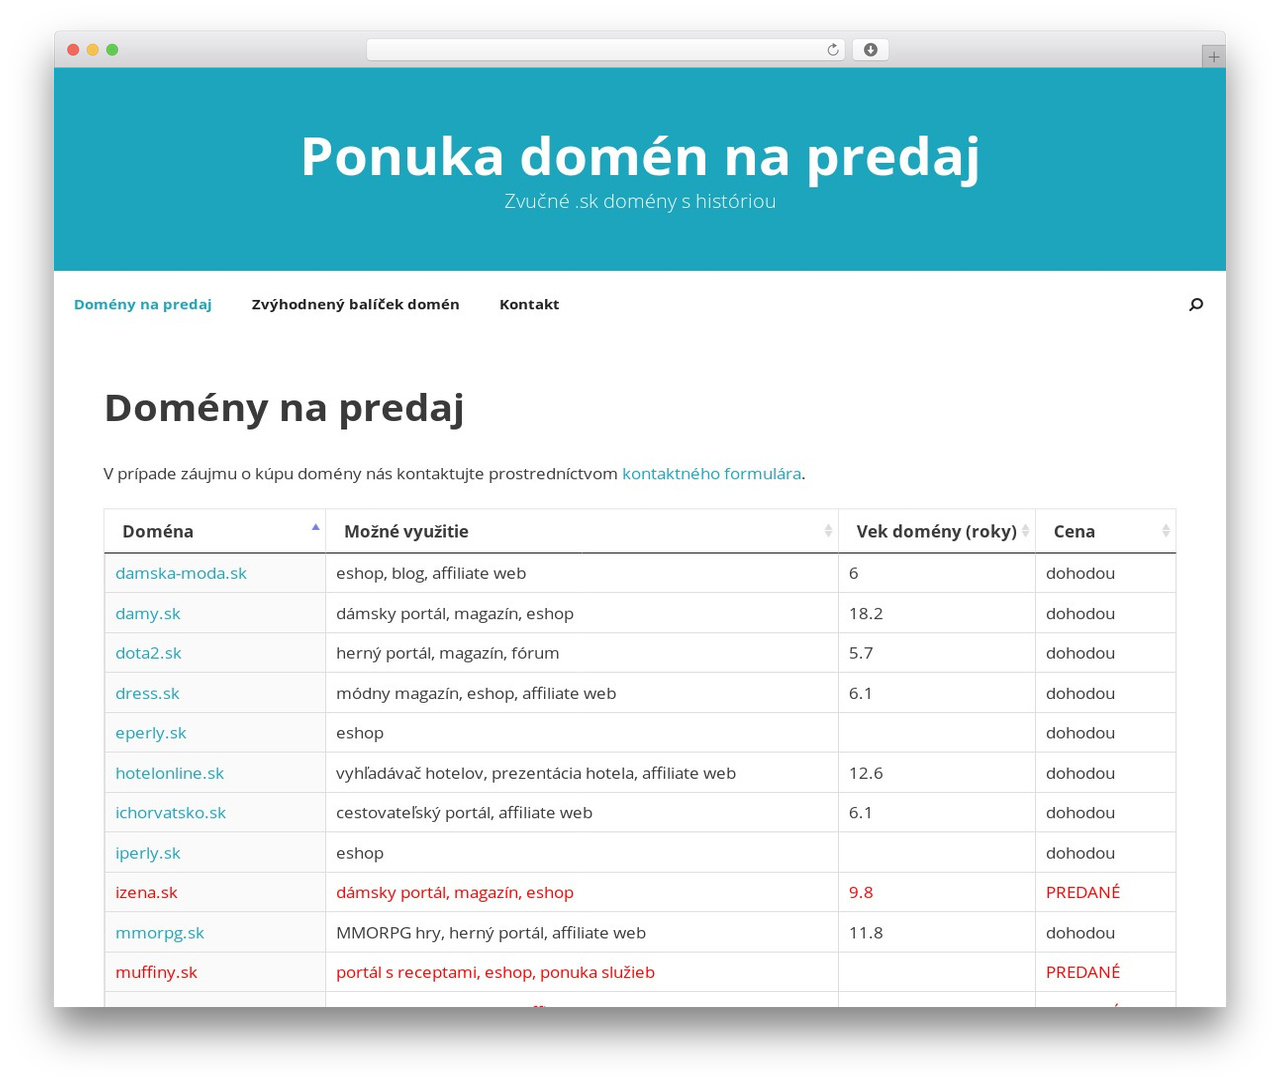 WordPress theme GeneratePress - ponukadomen.sk